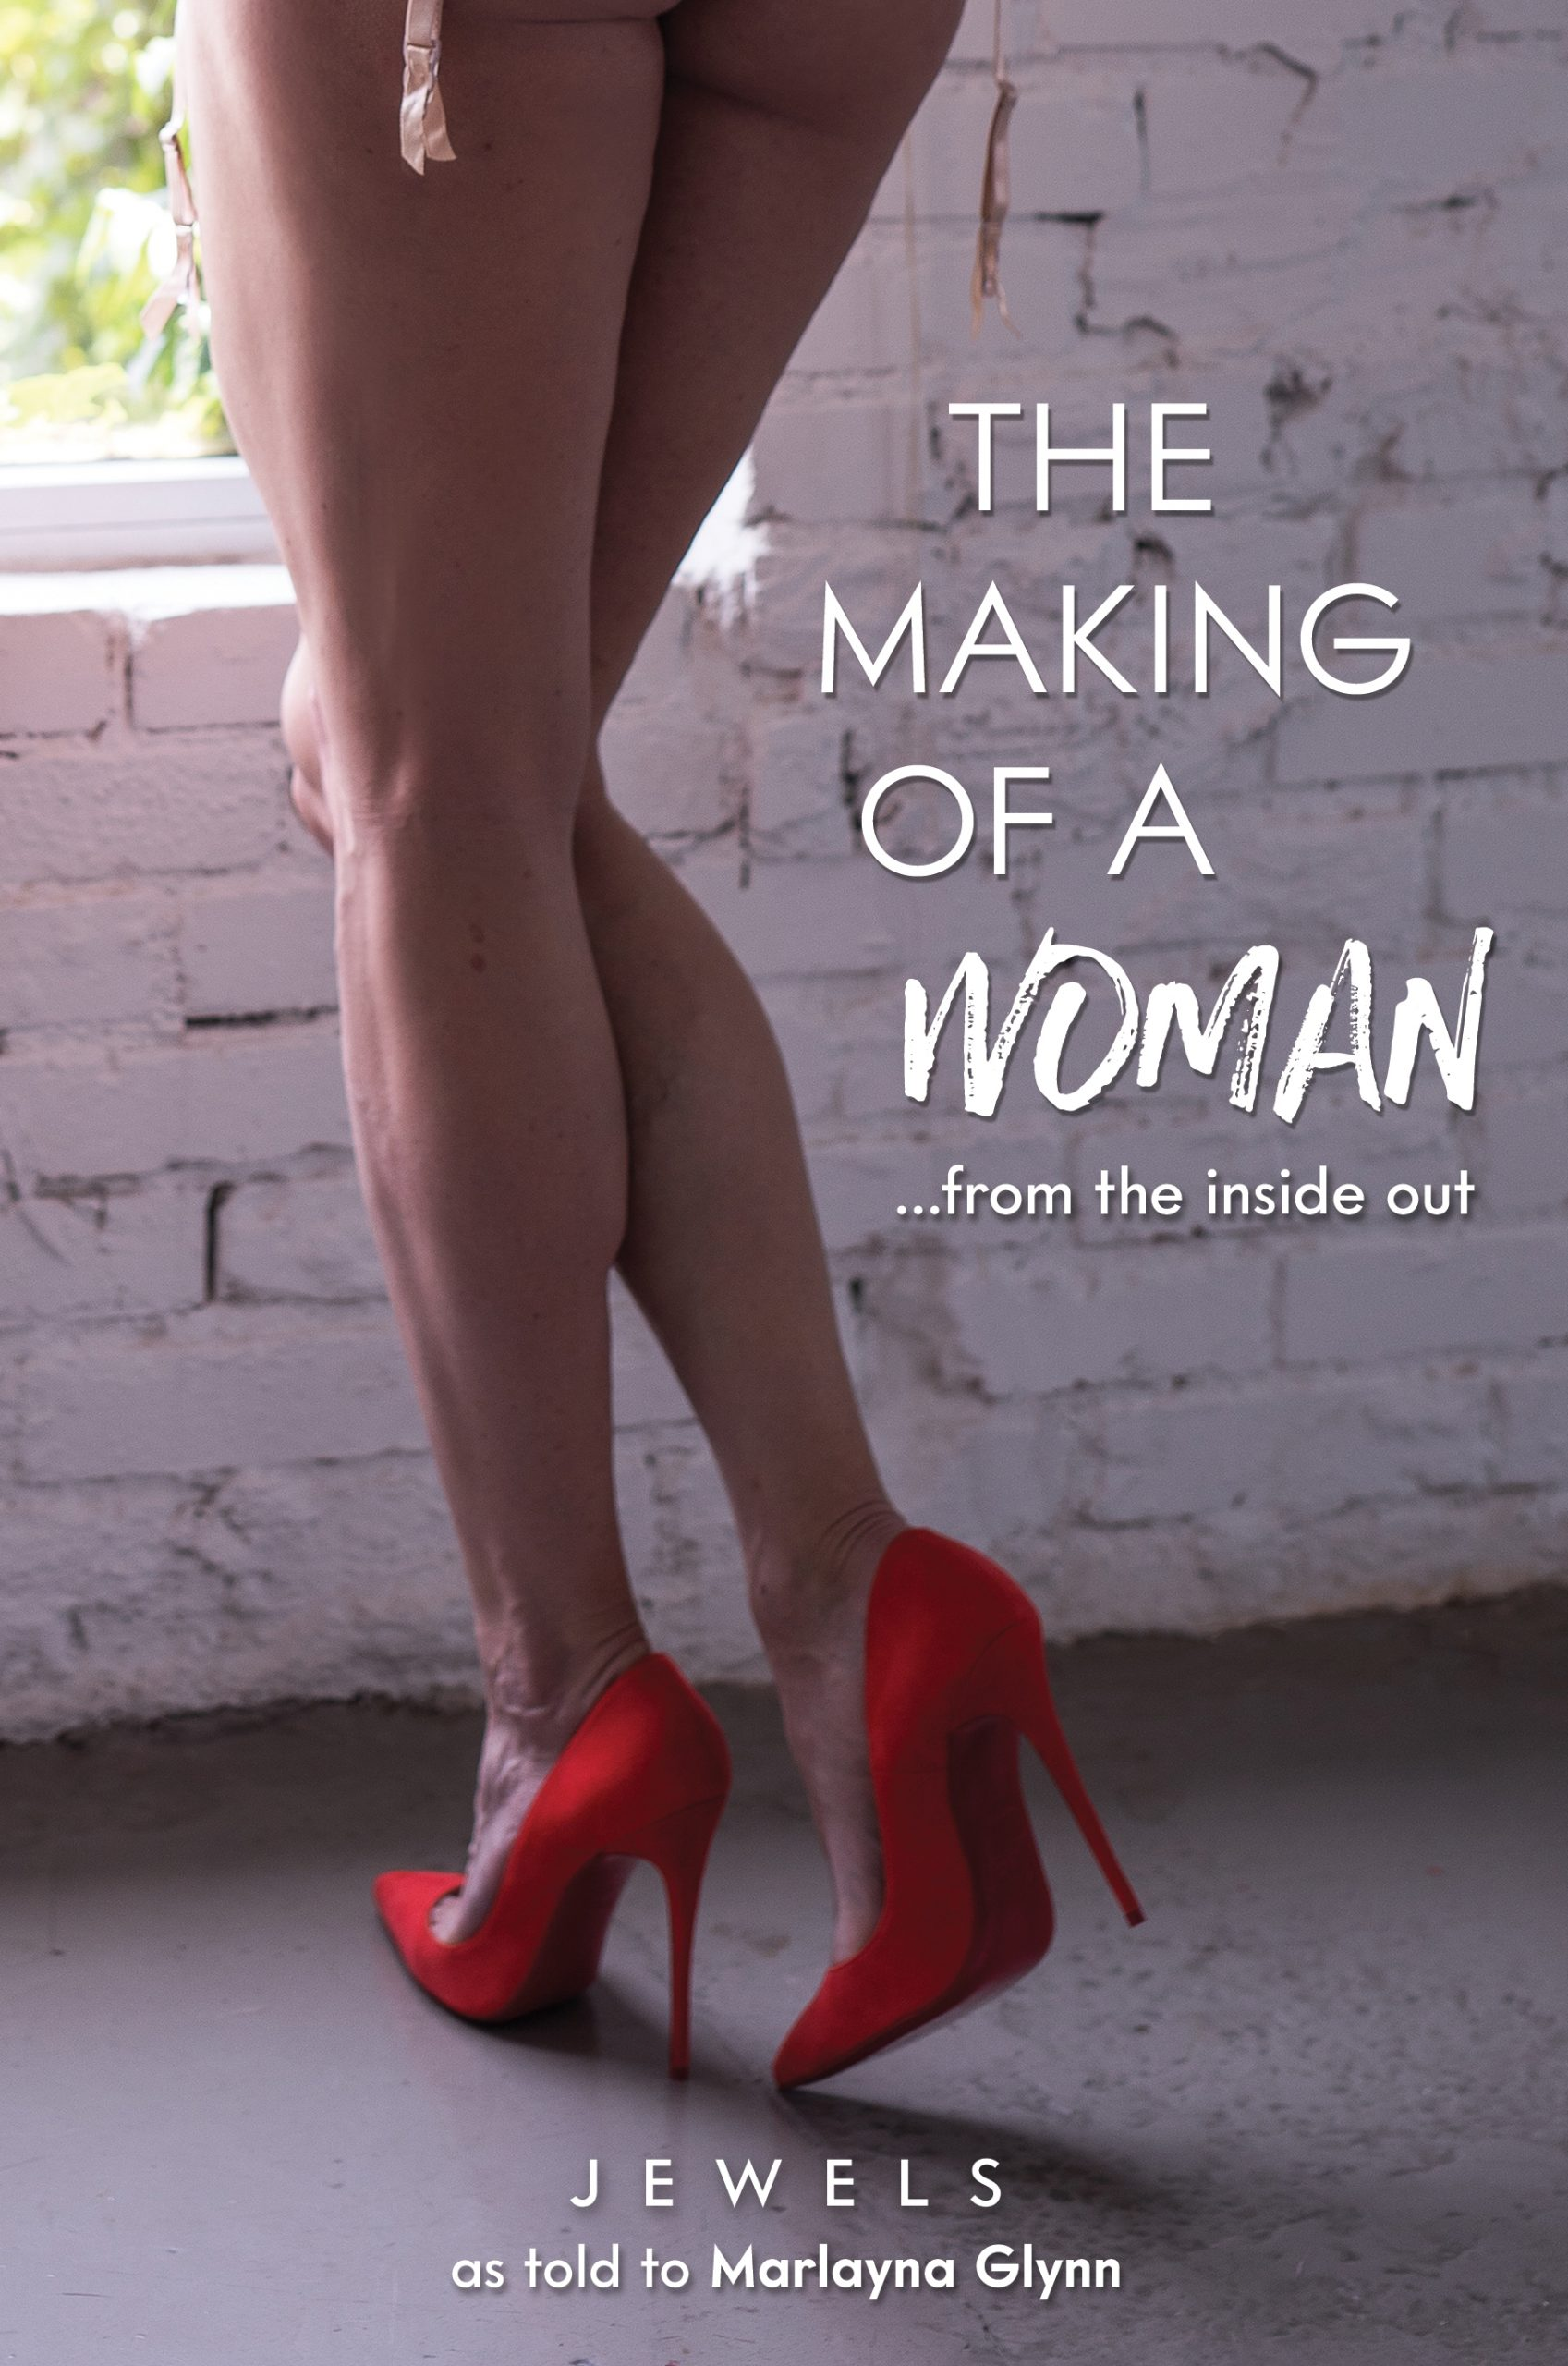 The Making of a Woman Kindle cover